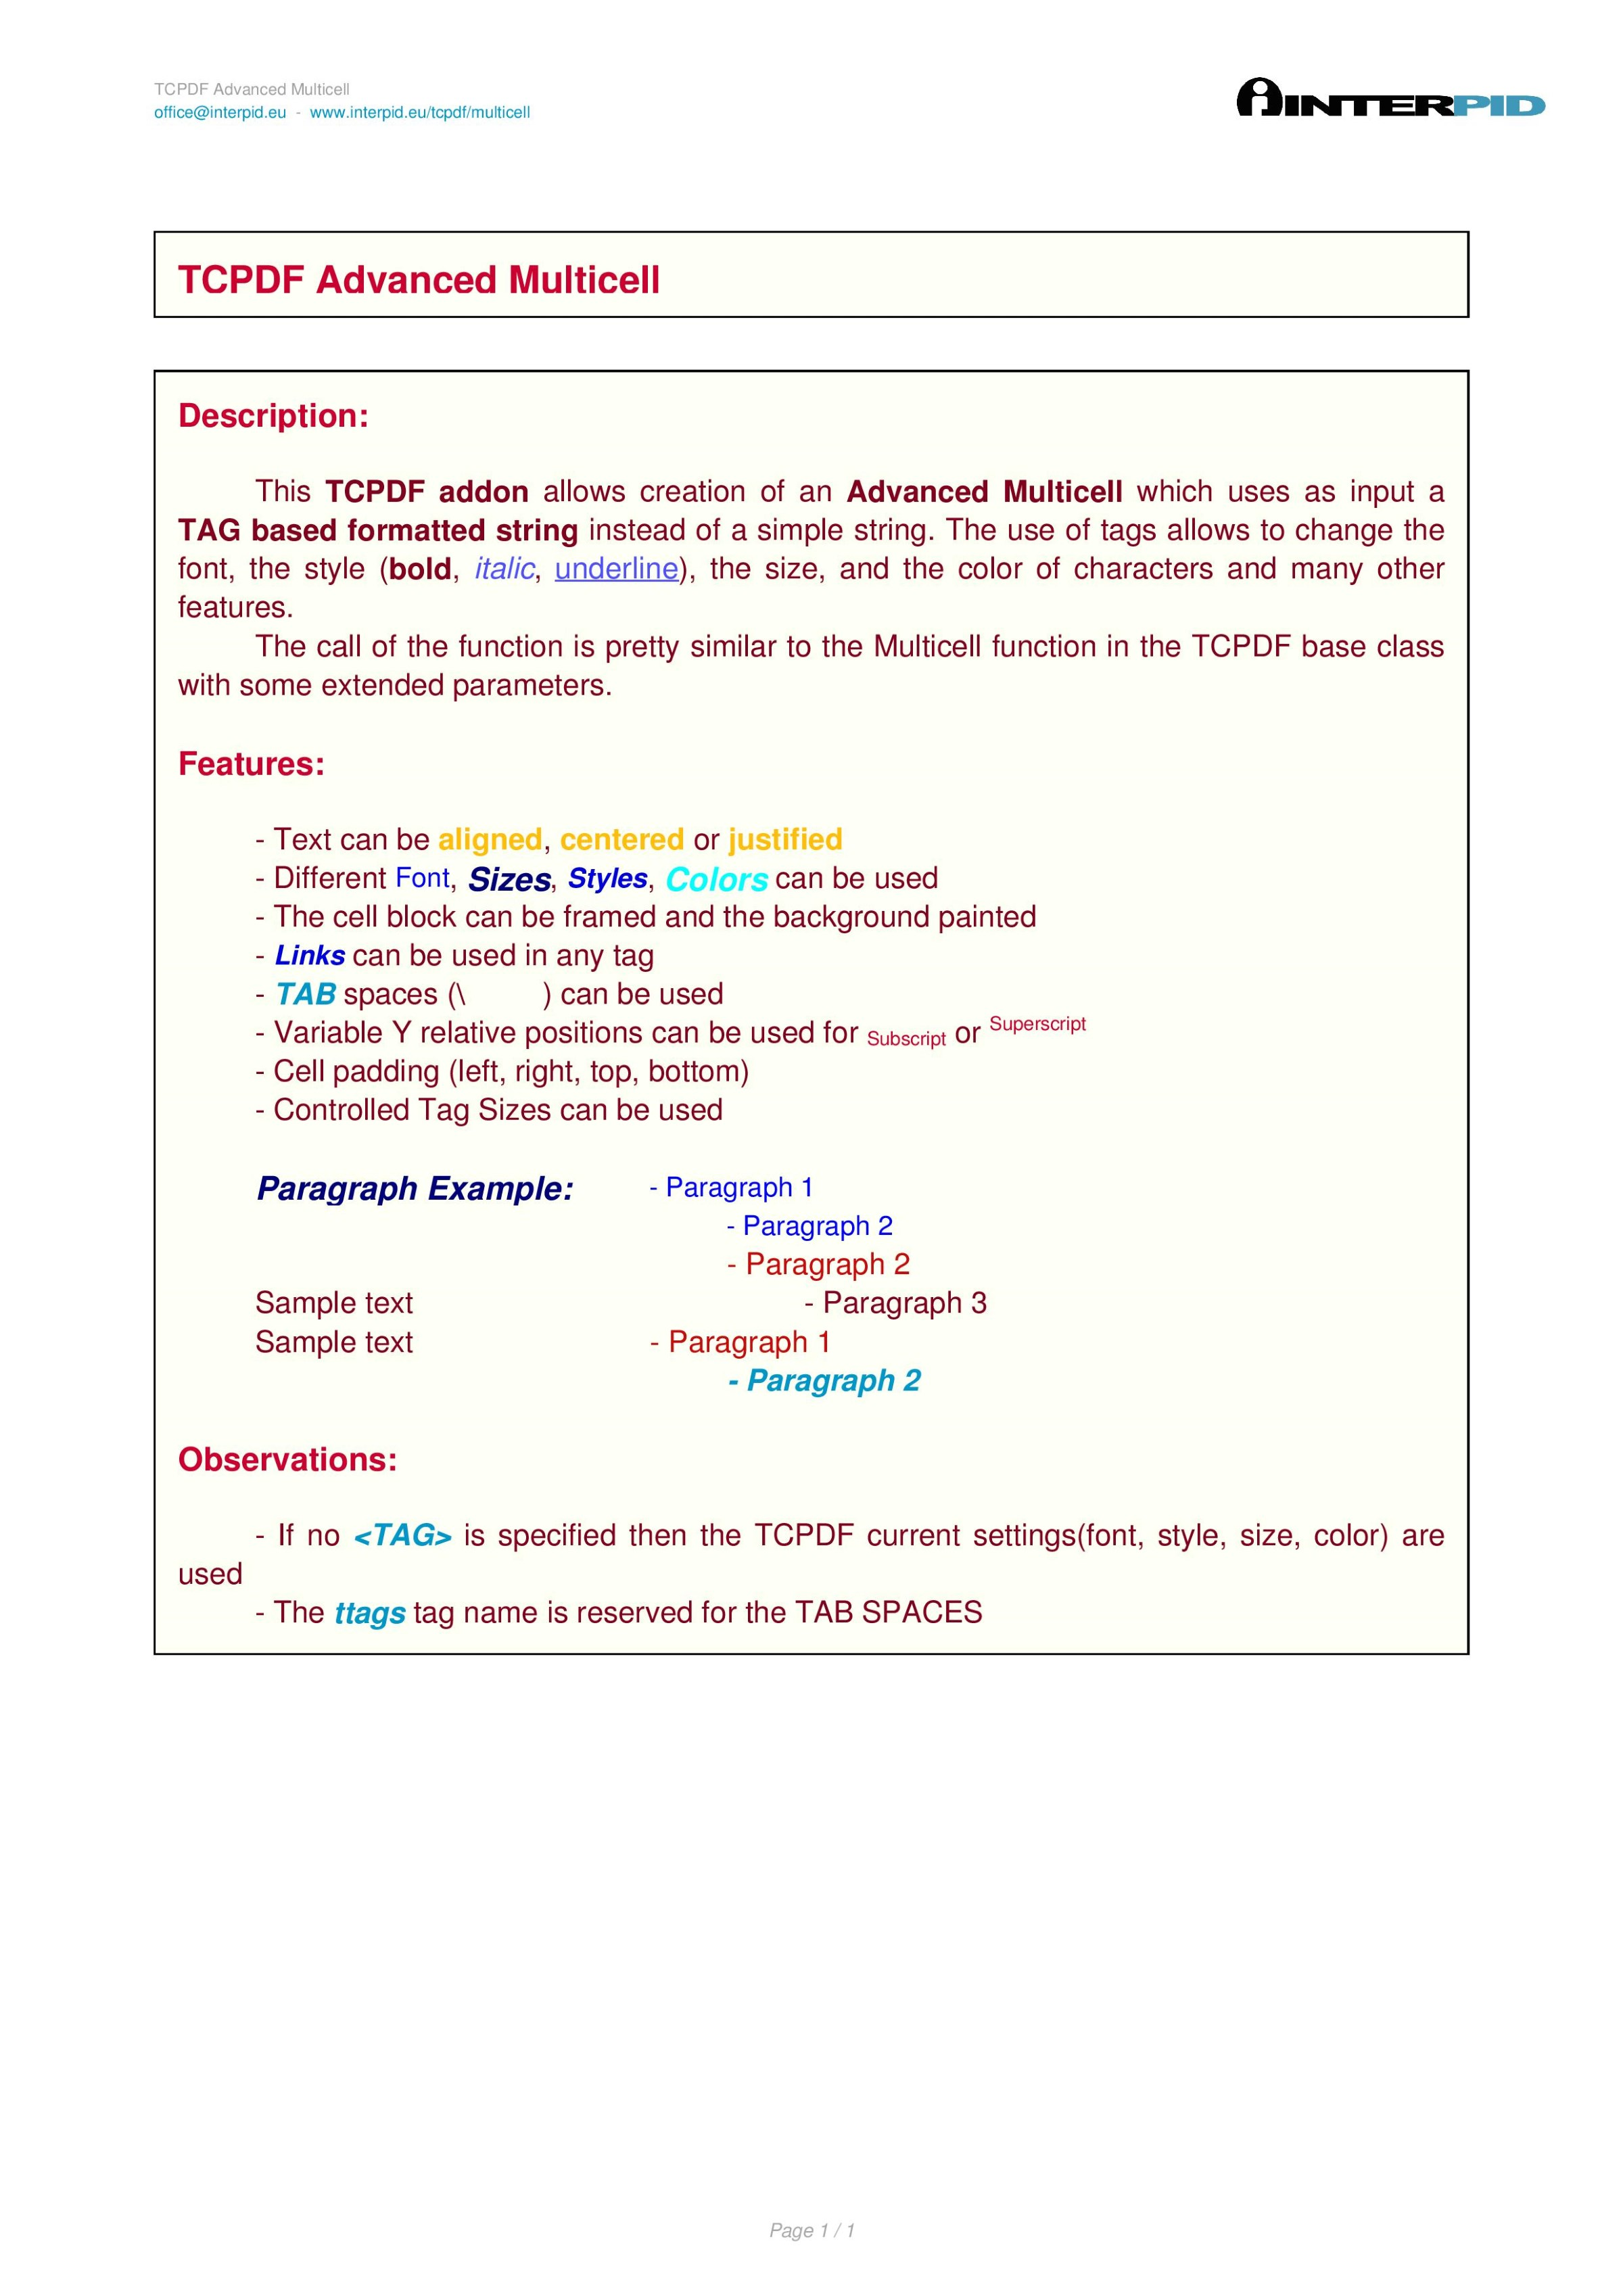 TCPDF Advanced Multicell